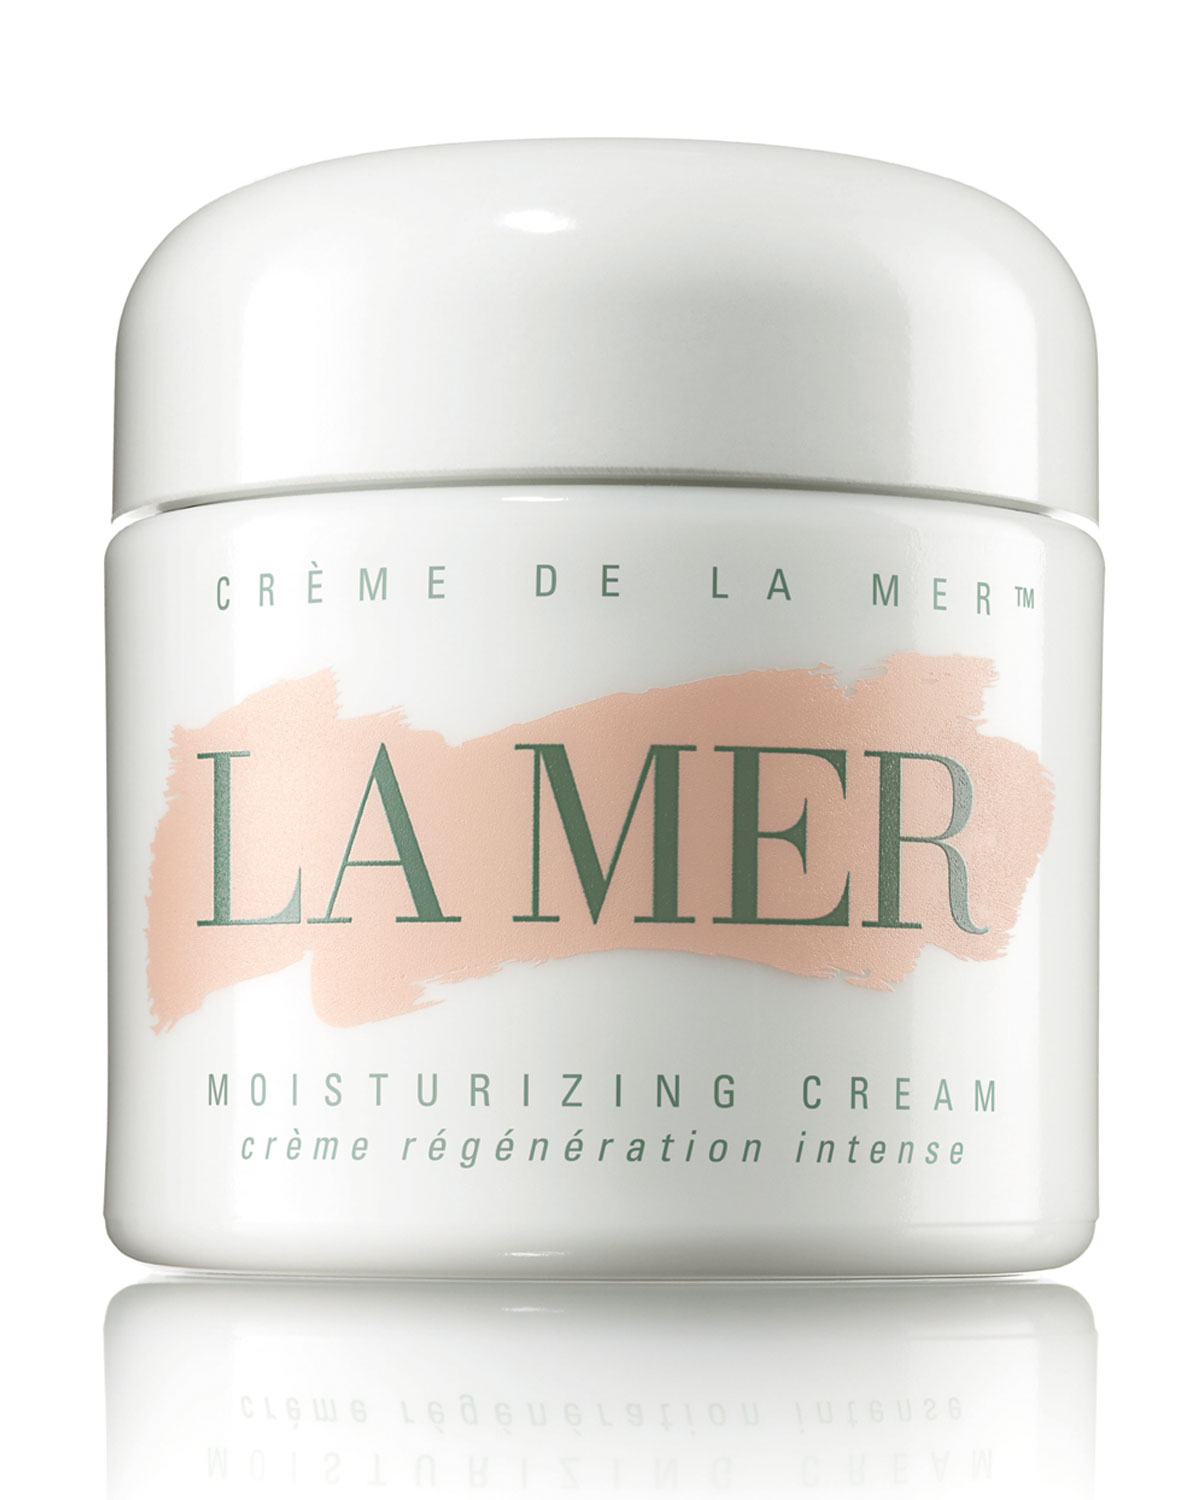 Crème de la Mer, 3.4 oz.